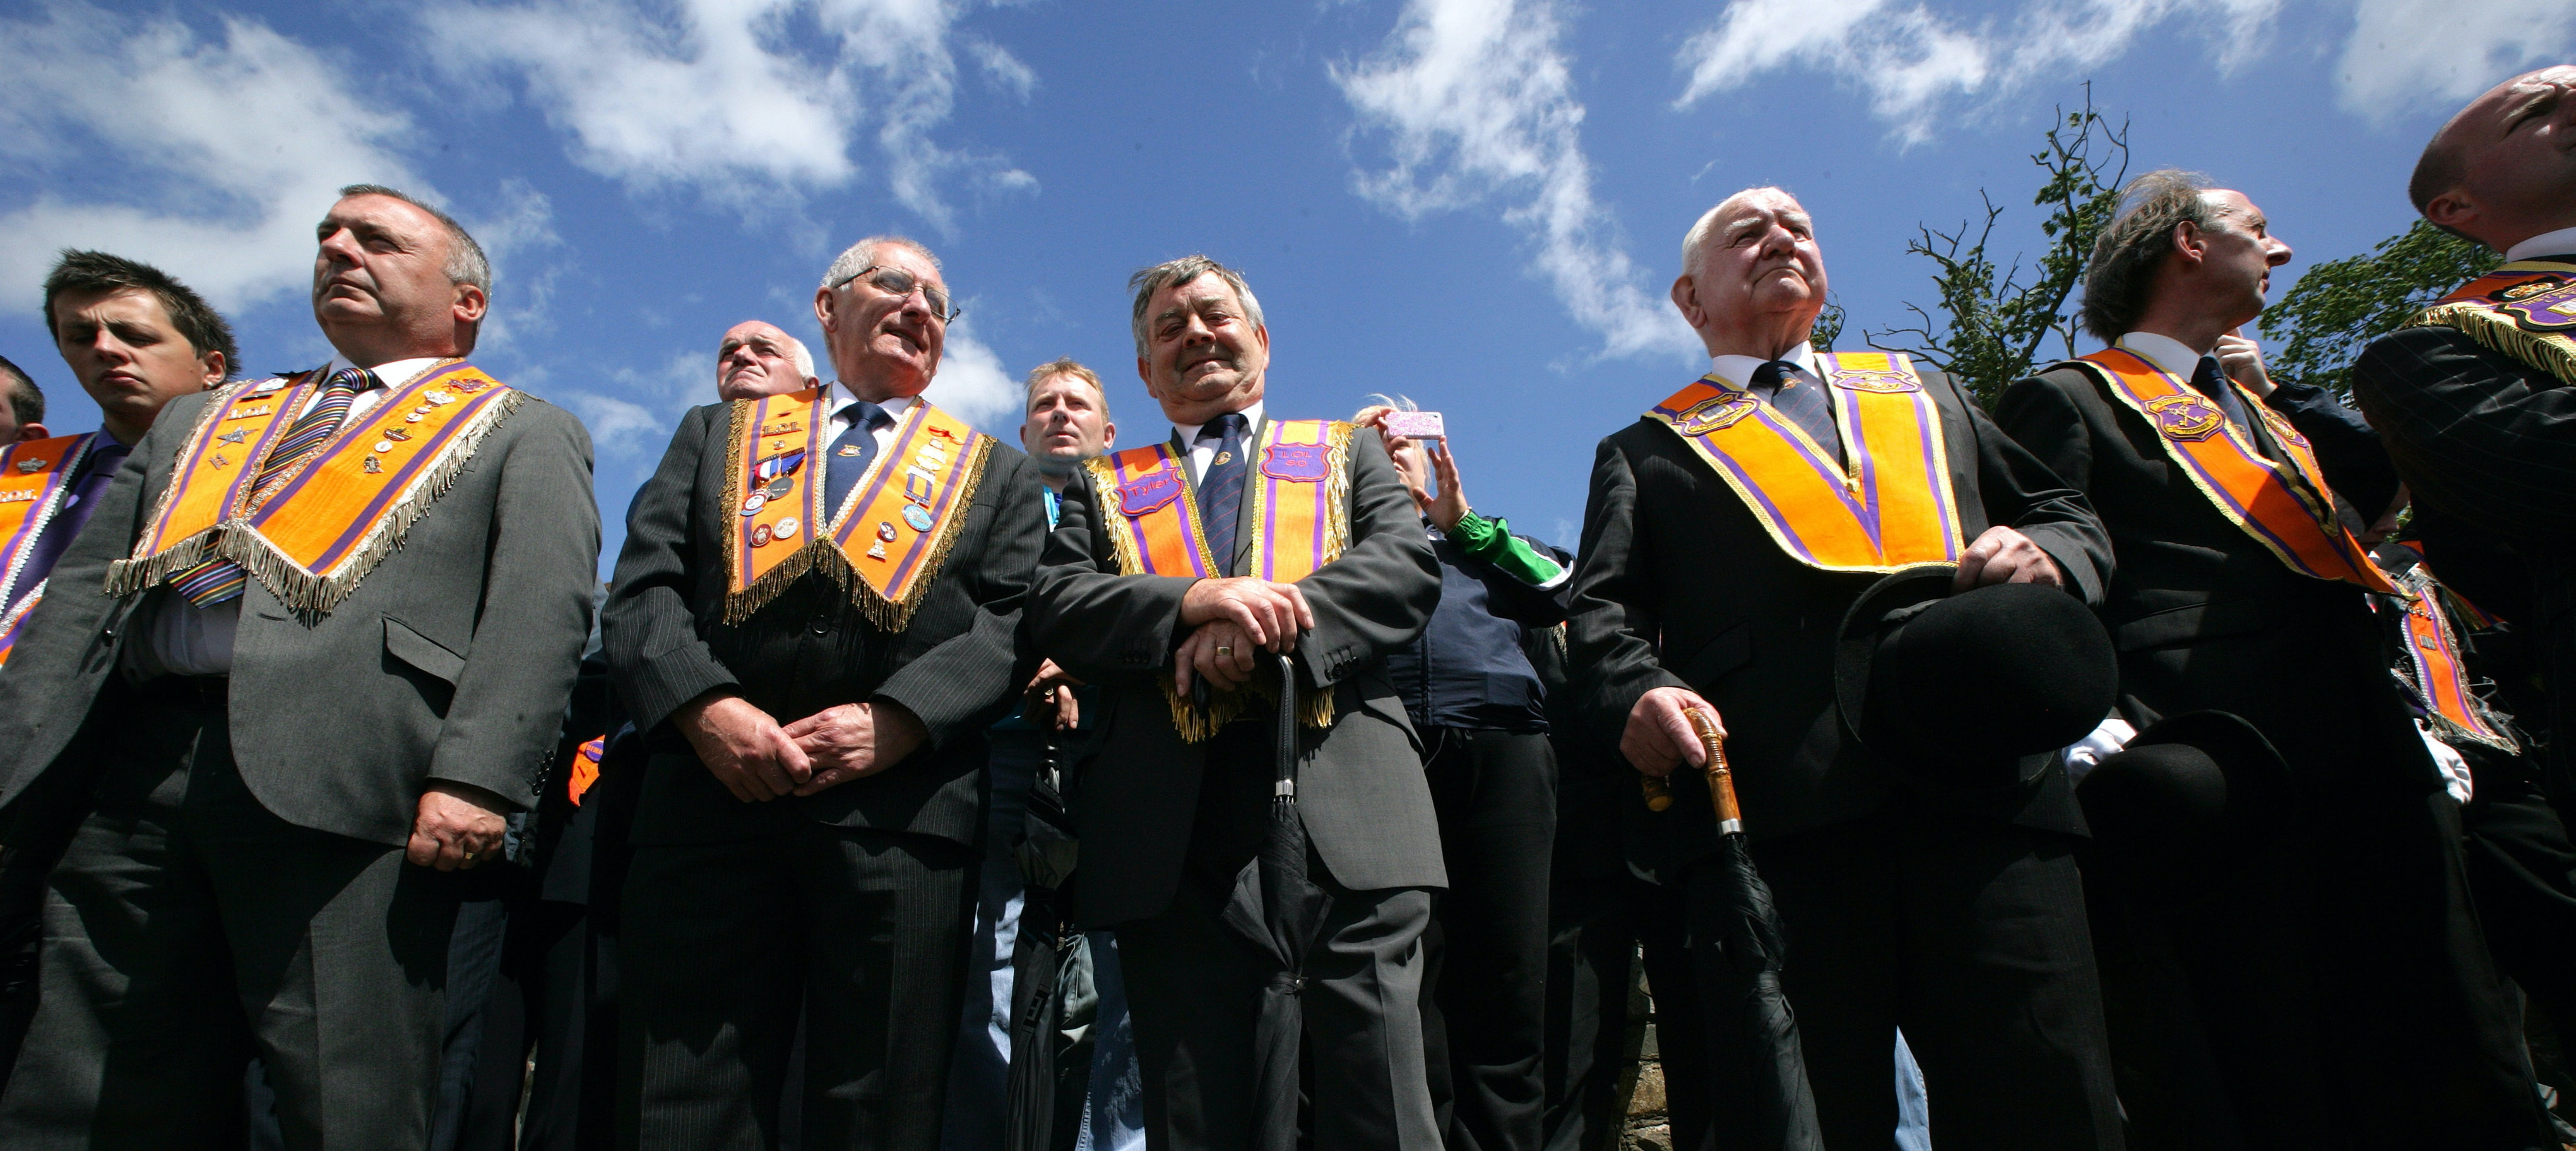 Unionist Voices and the Politics of Remembering the Past in Northern Ireland